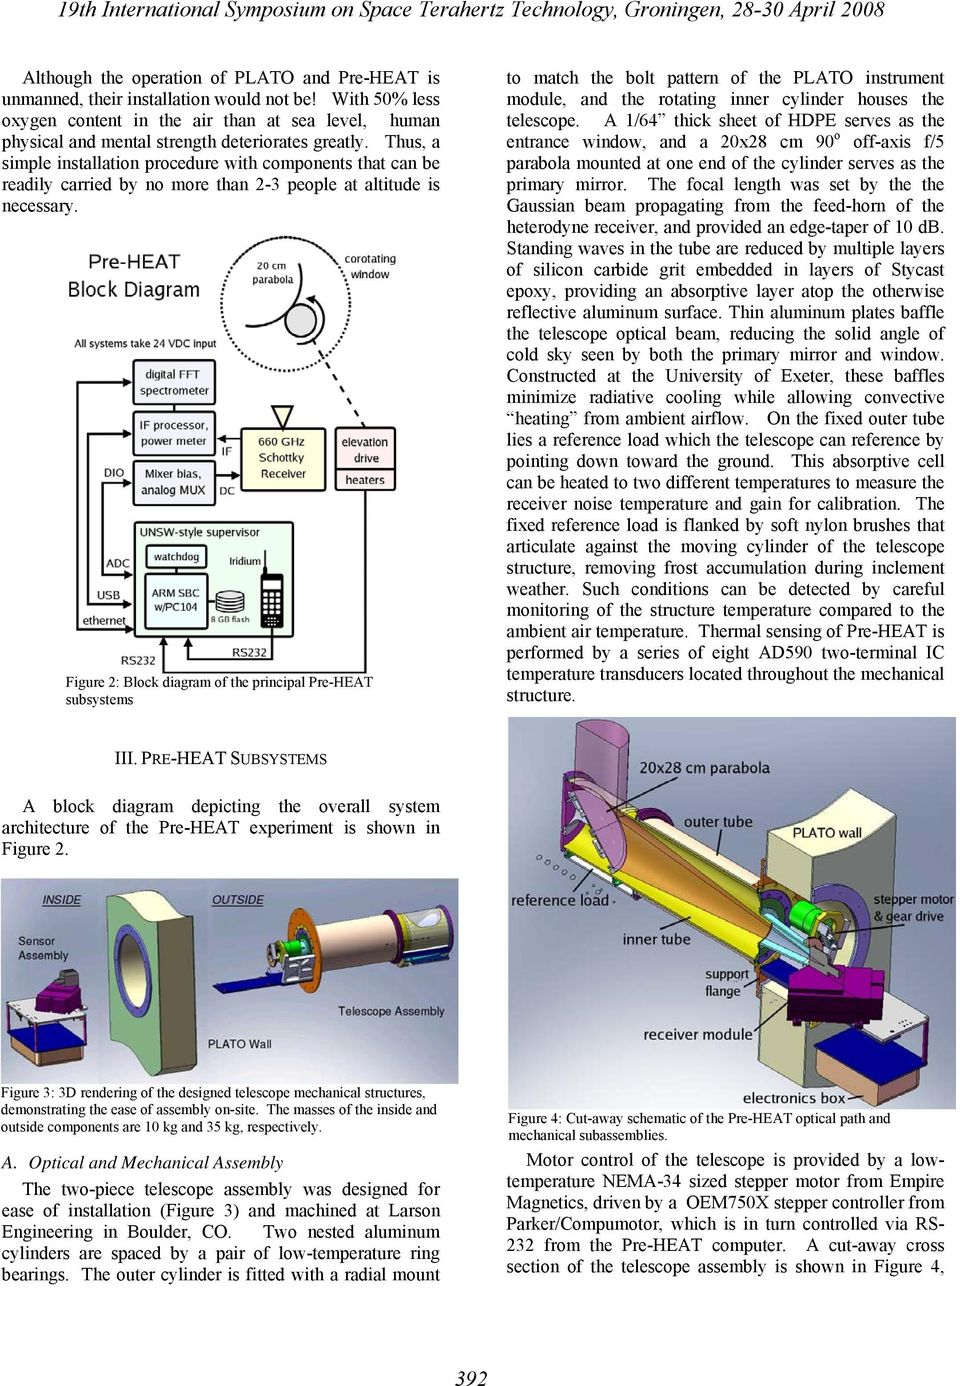 Proceedings Part 2 Posters Isstt Th International Symposium On Simple Brain Diagram Labeled Images Frompo Thus A Installation Procedure With Components That Can Be Readily Carried By No More